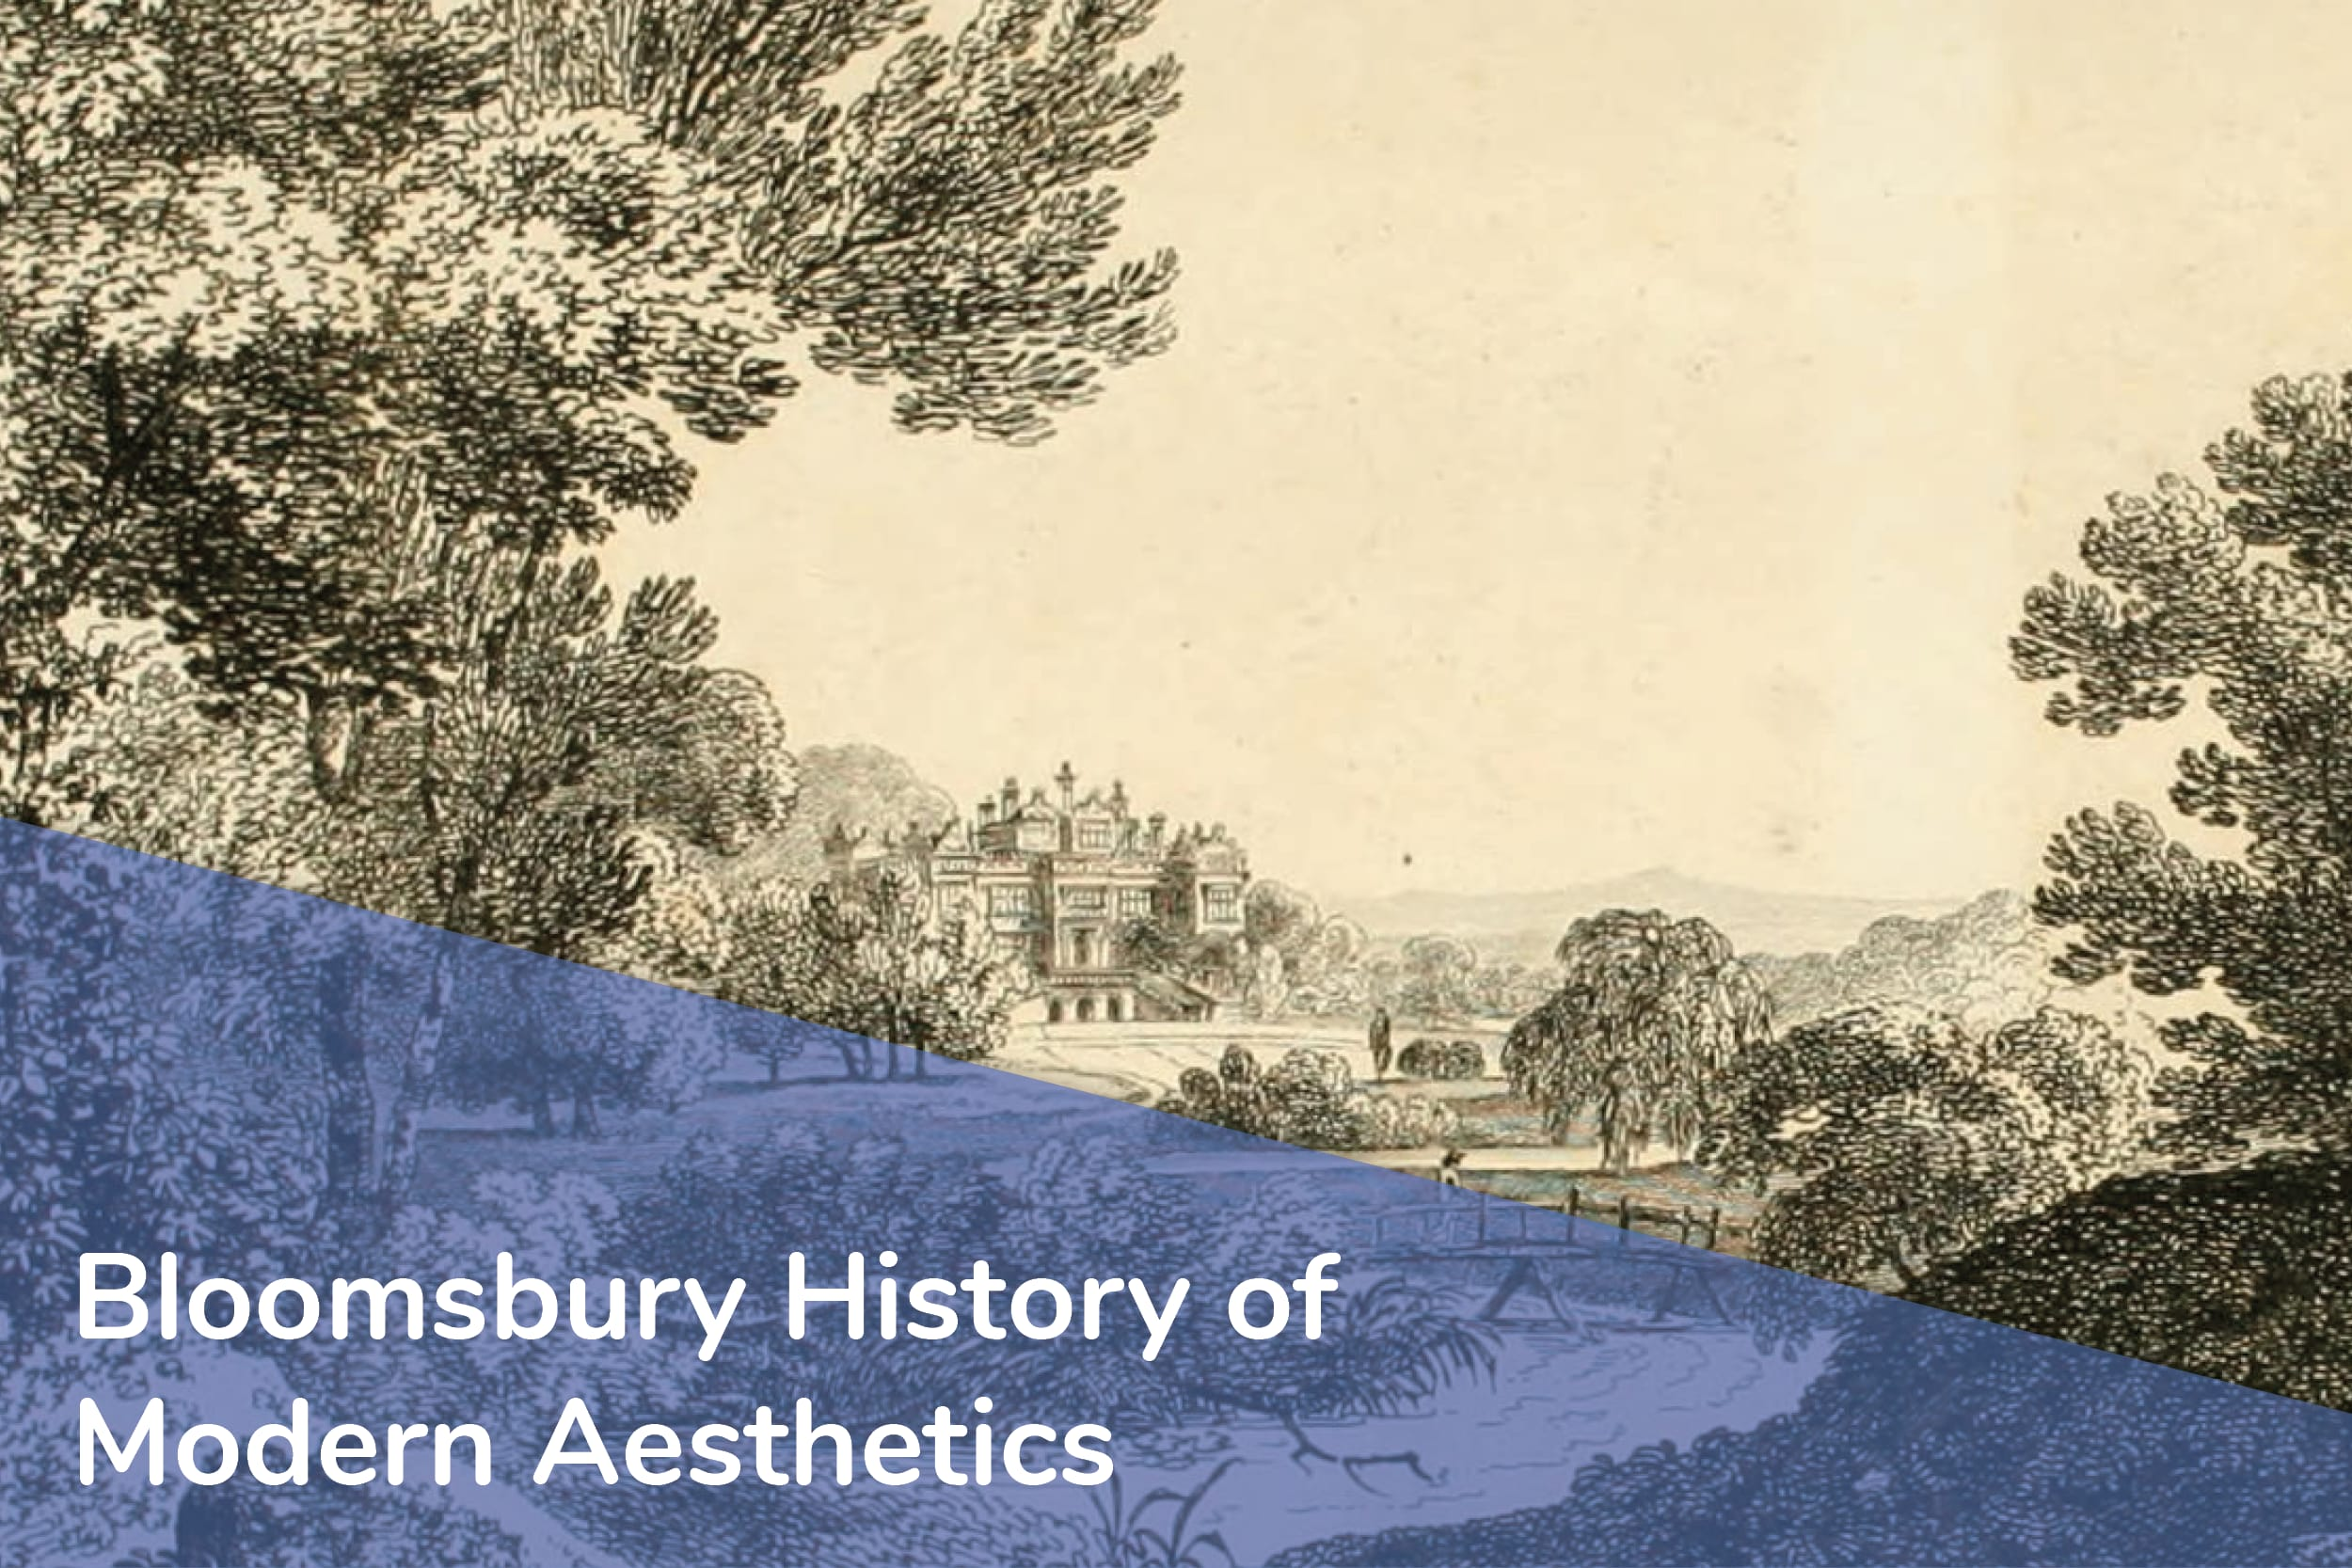 Bloomsbury History of Modern Aesthetics